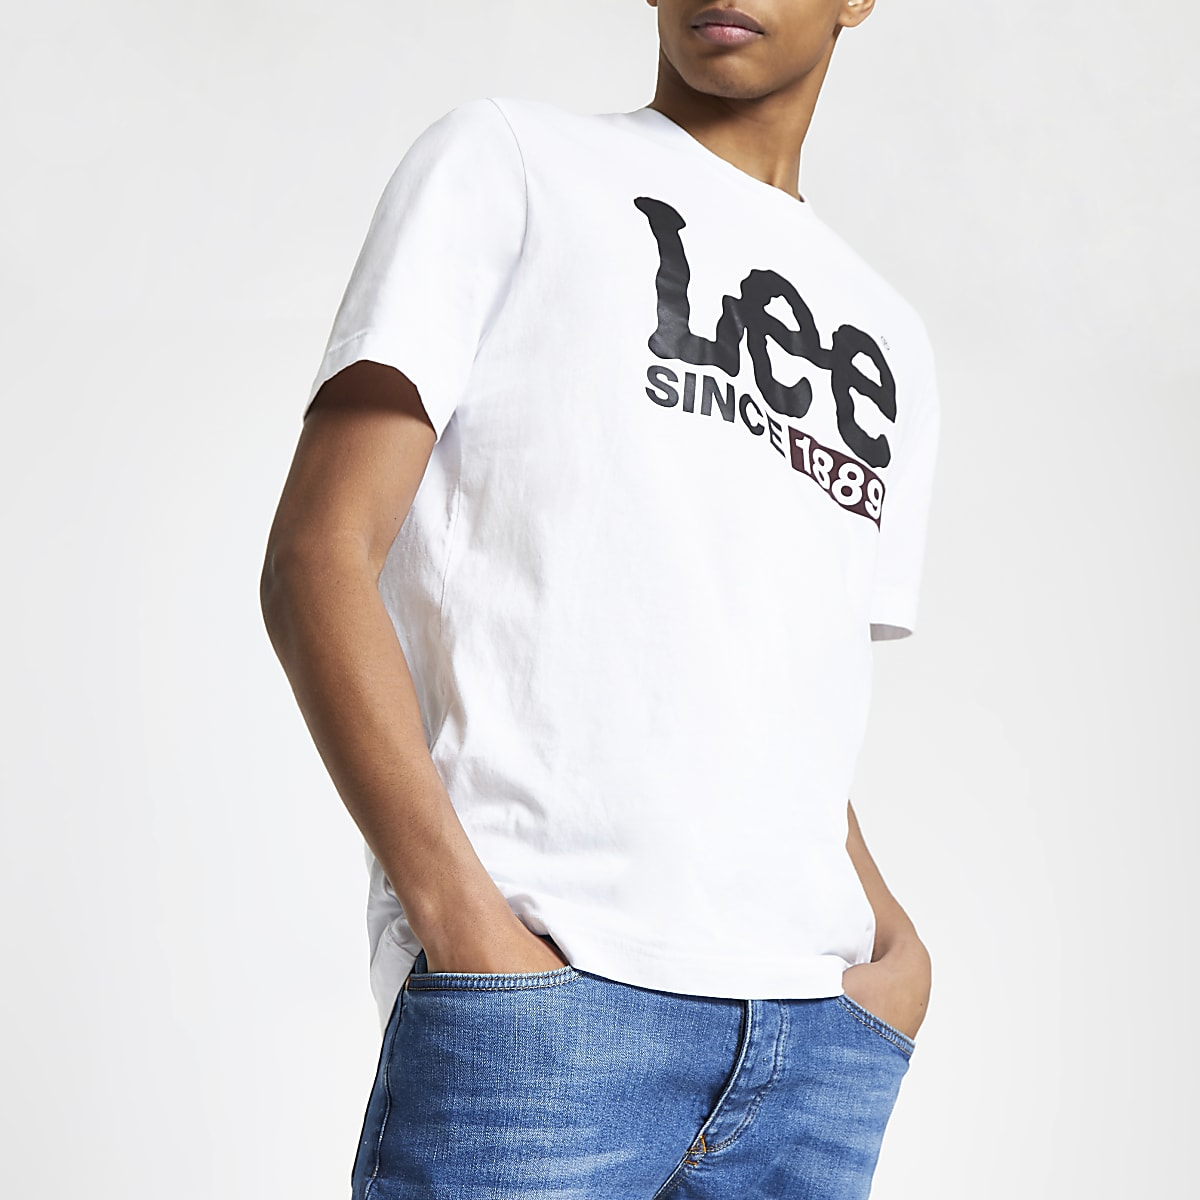 Lee white logo print T shirt